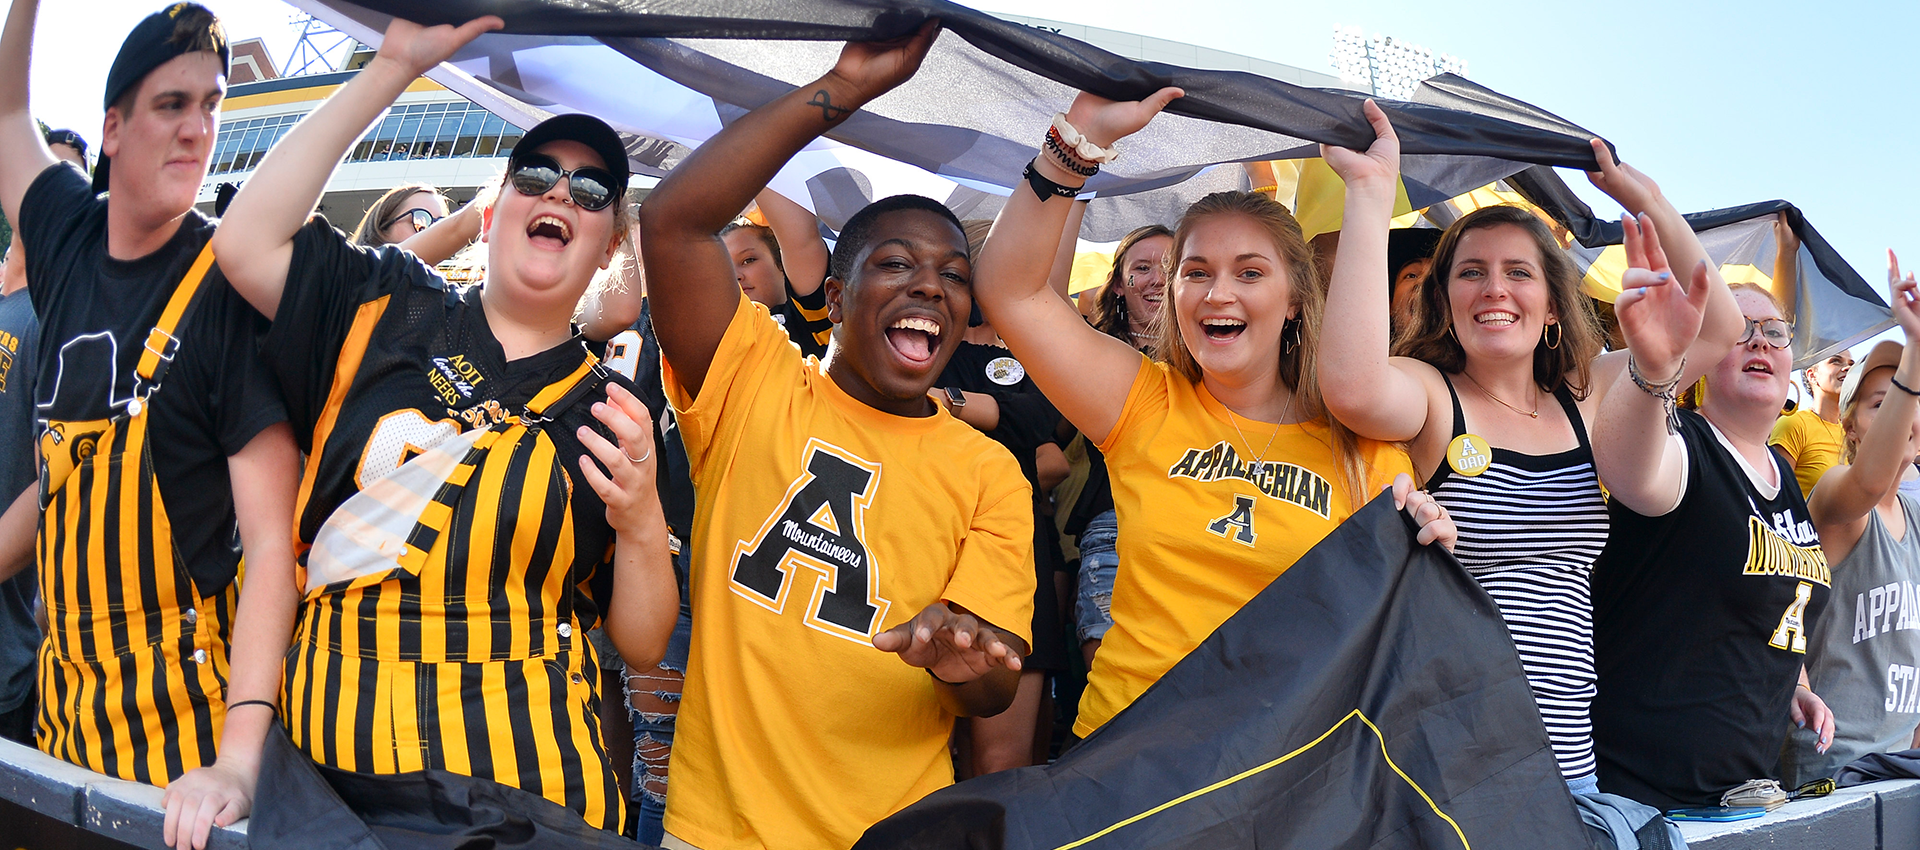 AppState Fans 2